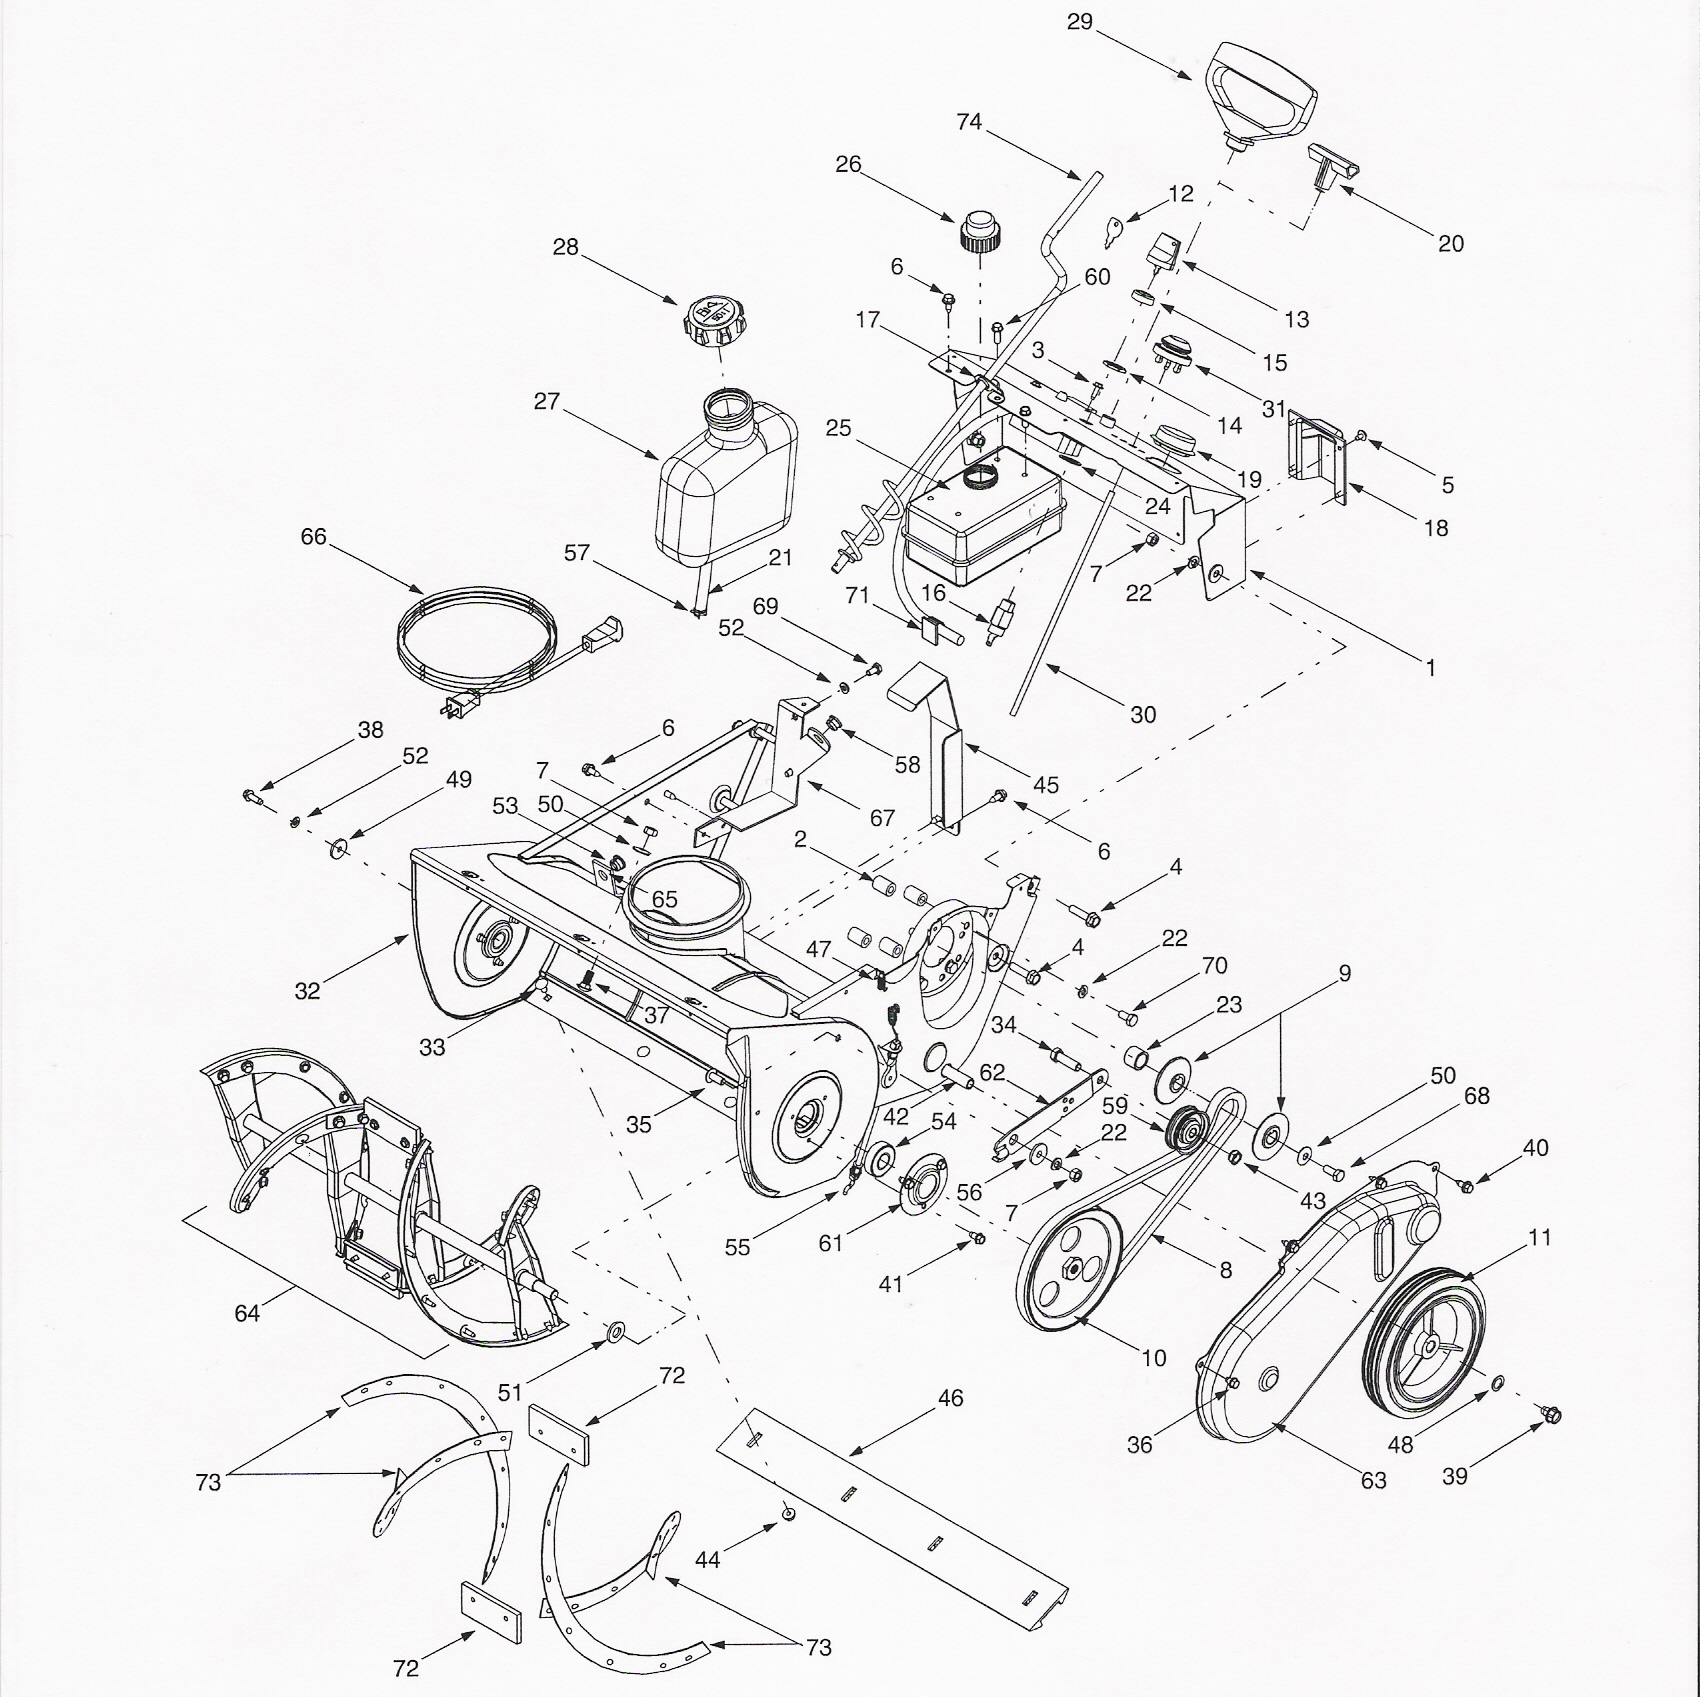 Deck Assembly in addition How To Rebuild A Tecumseh Carburetor moreover 234024117 in addition Craftsman Tiller Starter Rope likewise Cub Cadet Snow Thrower Parts Diagram. on troy bilt mower diagram